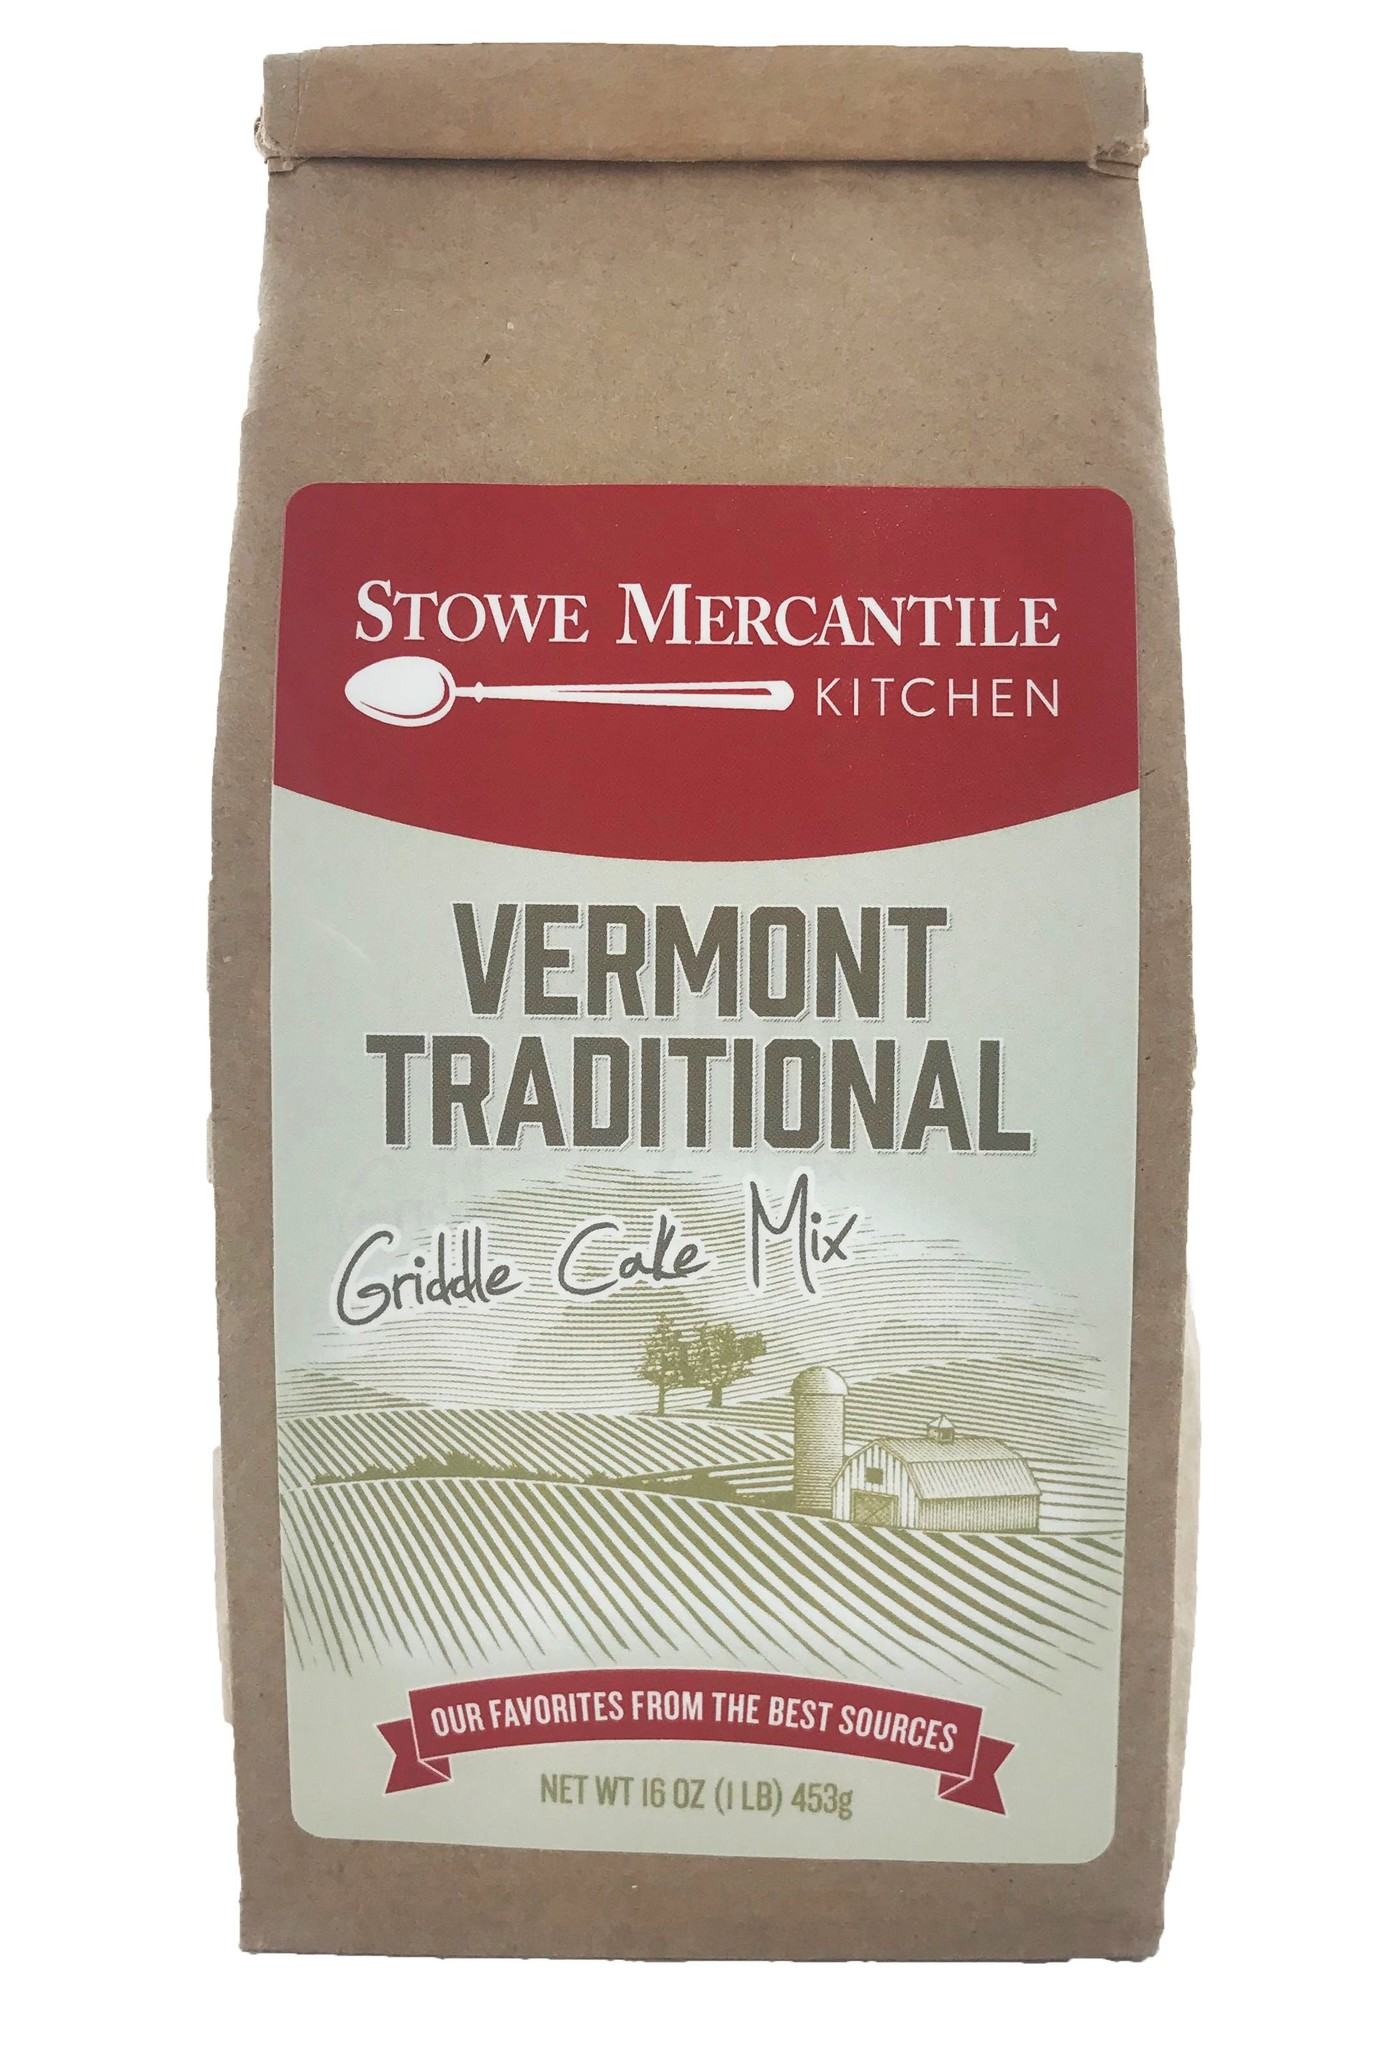 Stowe Mercantile Kitchen Griddle Cake Mix - 1lb, Vermont Traditional